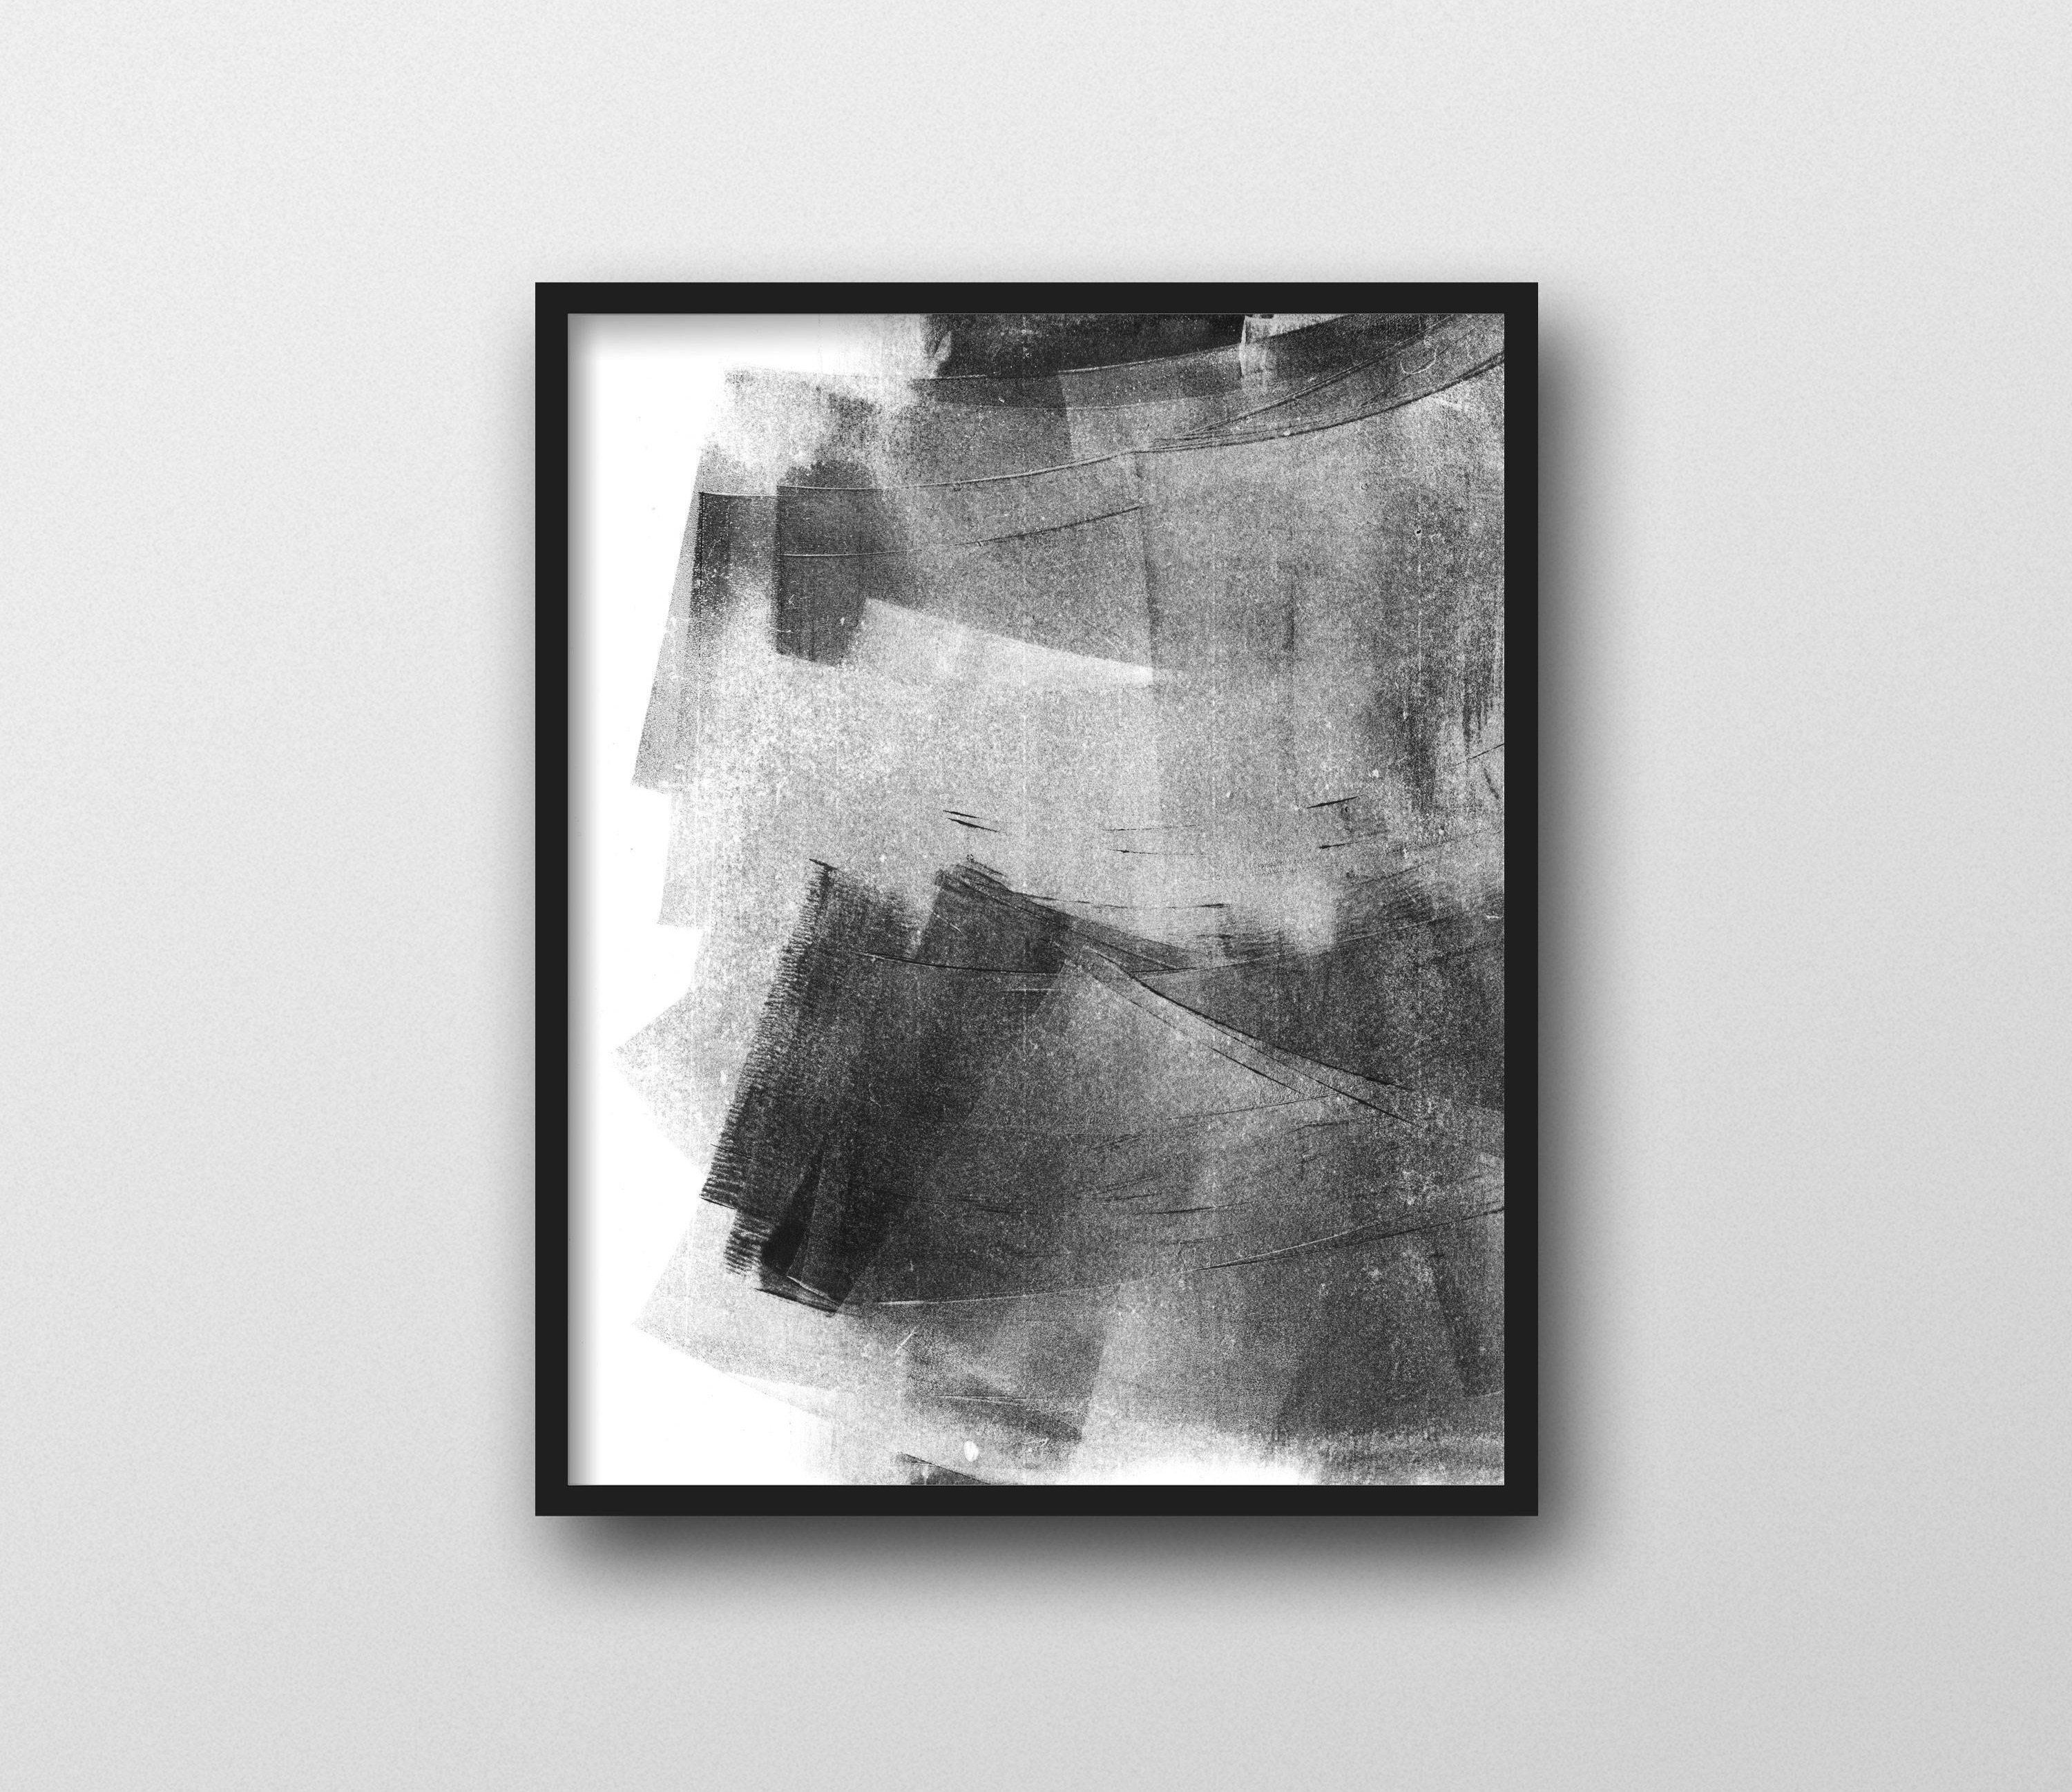 Abstract Art Black And White Wall Art Minimalist Painting Black Grey Art Prints Scan Abstract Painting Print Minimalist Painting Modern Abstract Painting